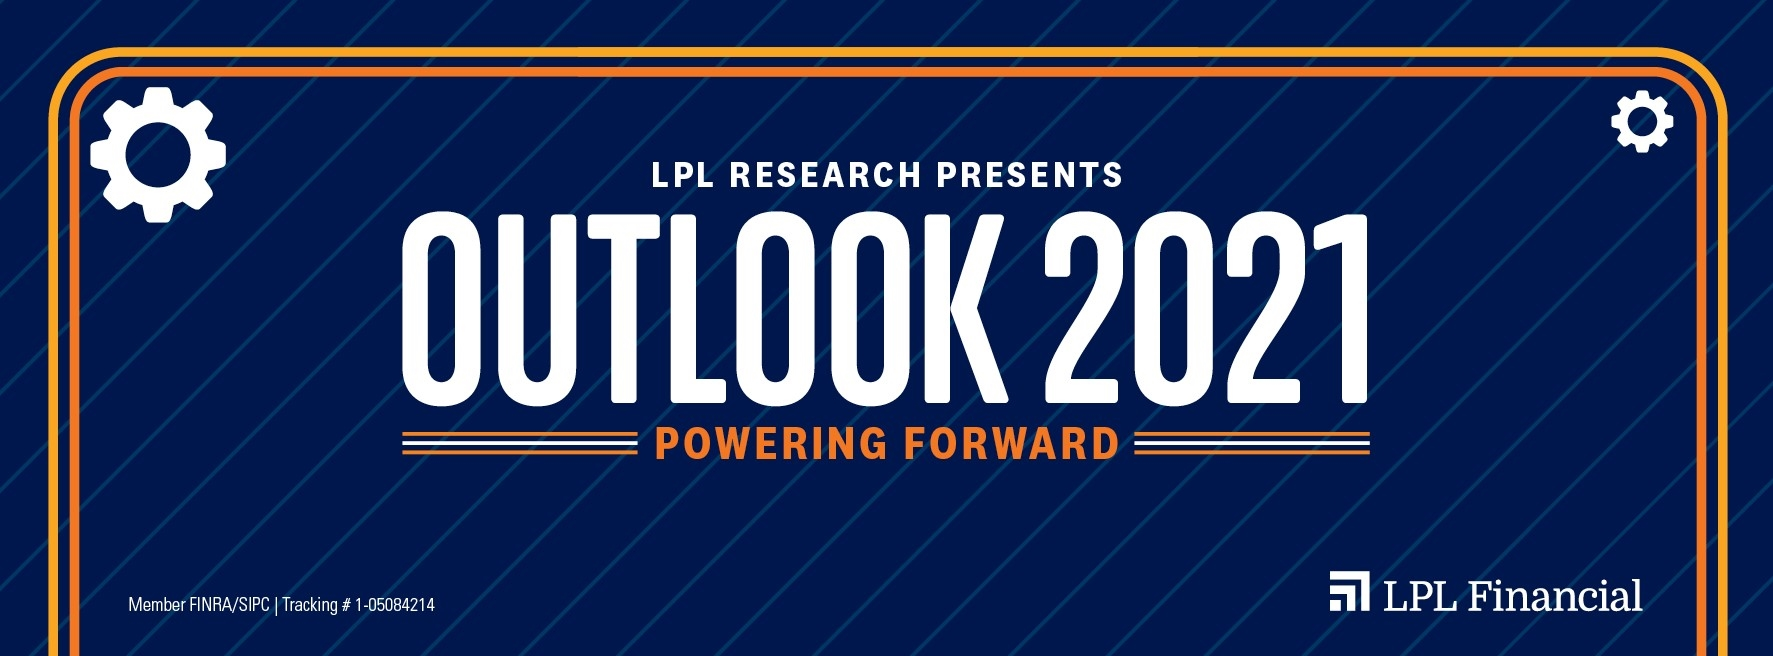 LPL RESEARCH OUTLOOK 2021